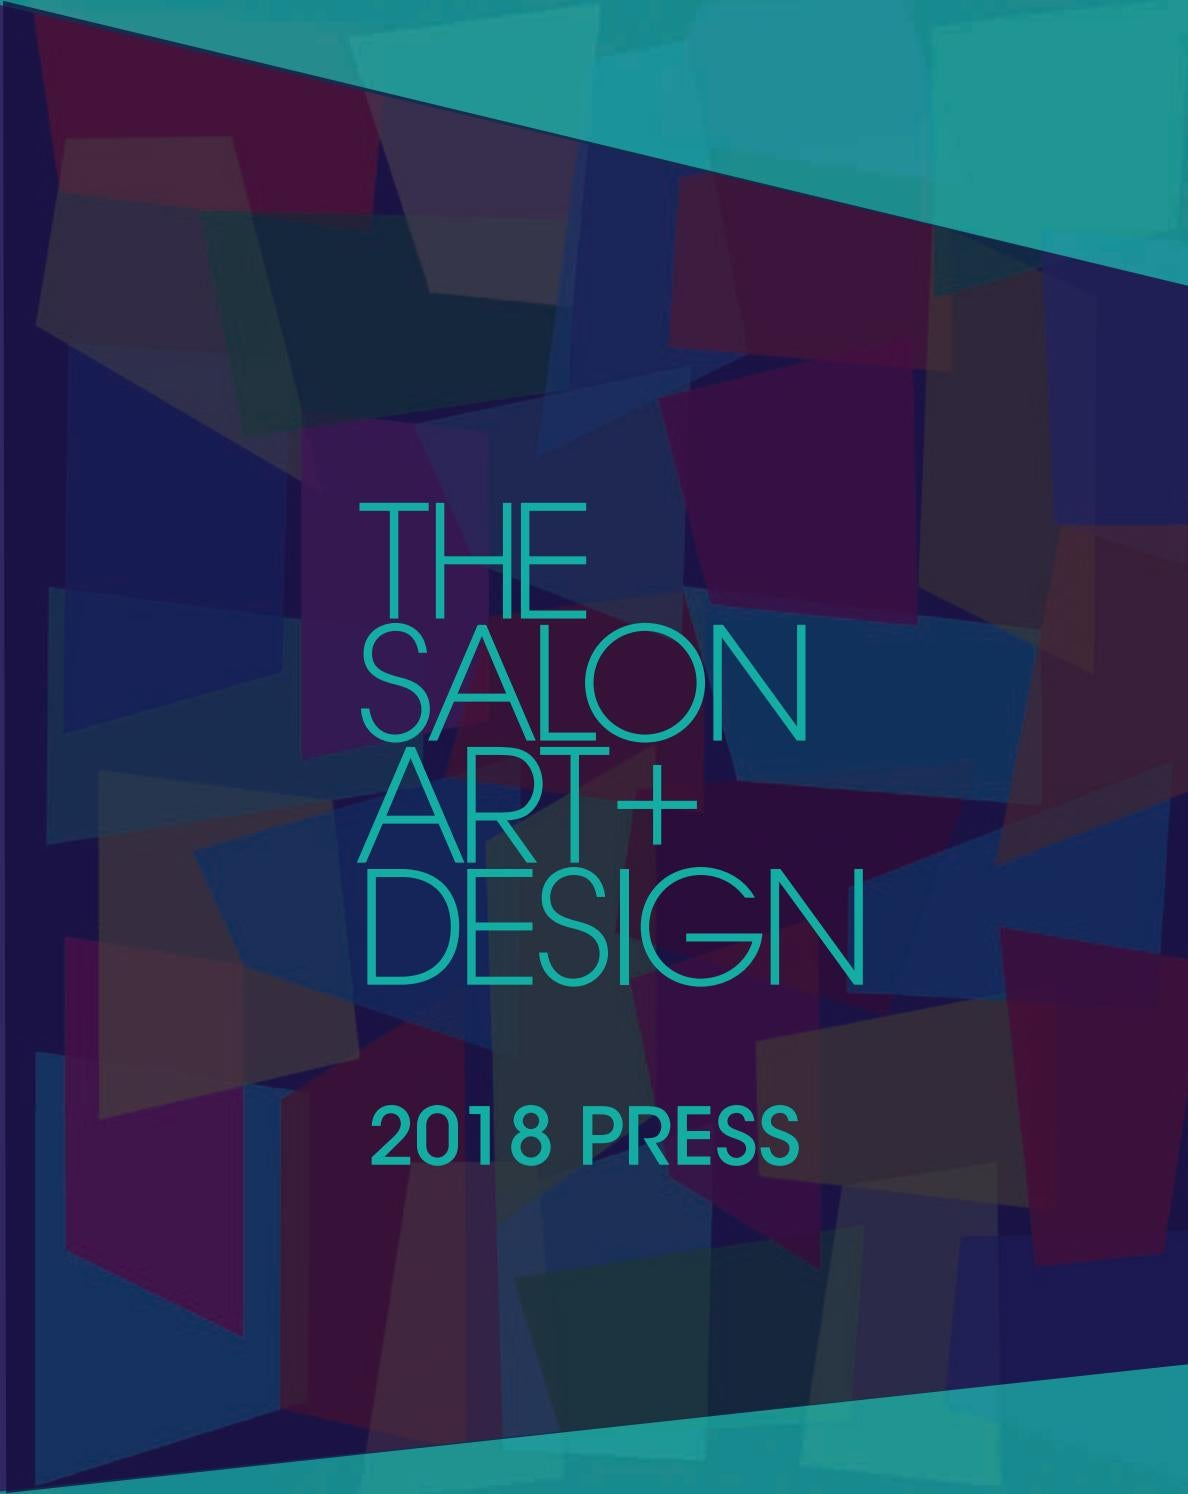 Tappeto Musicale Jump& The Salon Art Design 2018 Press